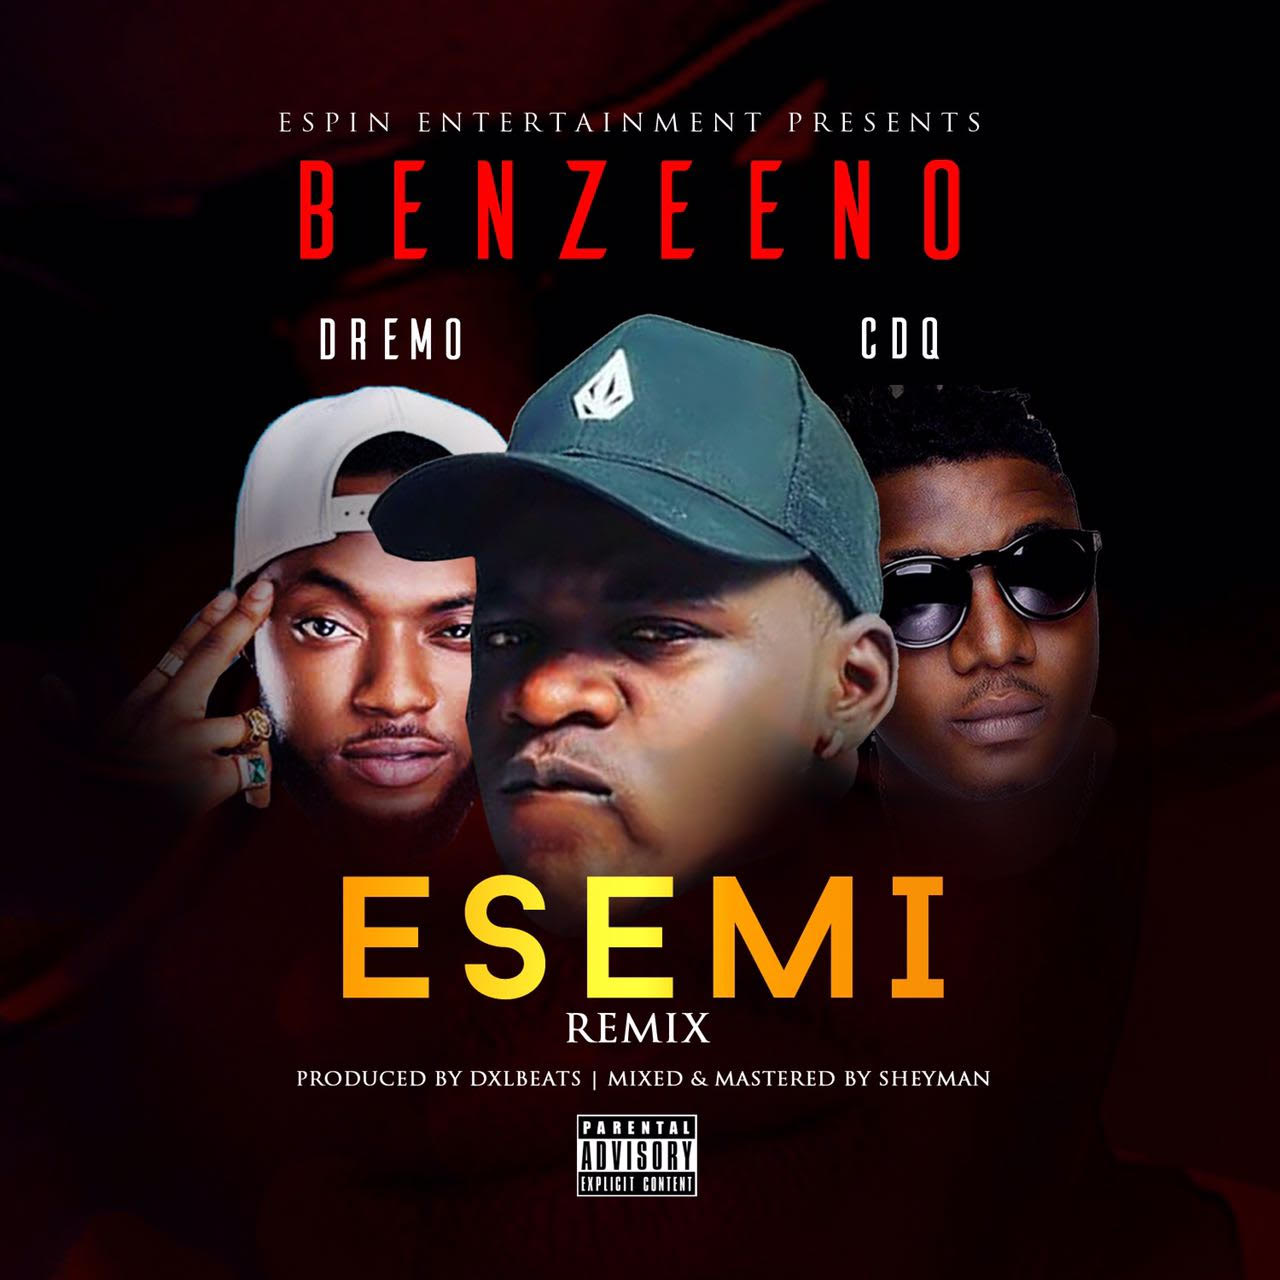 Benzeeno Ese Mi Remix ft. CDQ Dremo ART  - VIDEO: Benzeeno ft. CDQ & Dremo – 'Ese Mi (Remix)' | WATCH